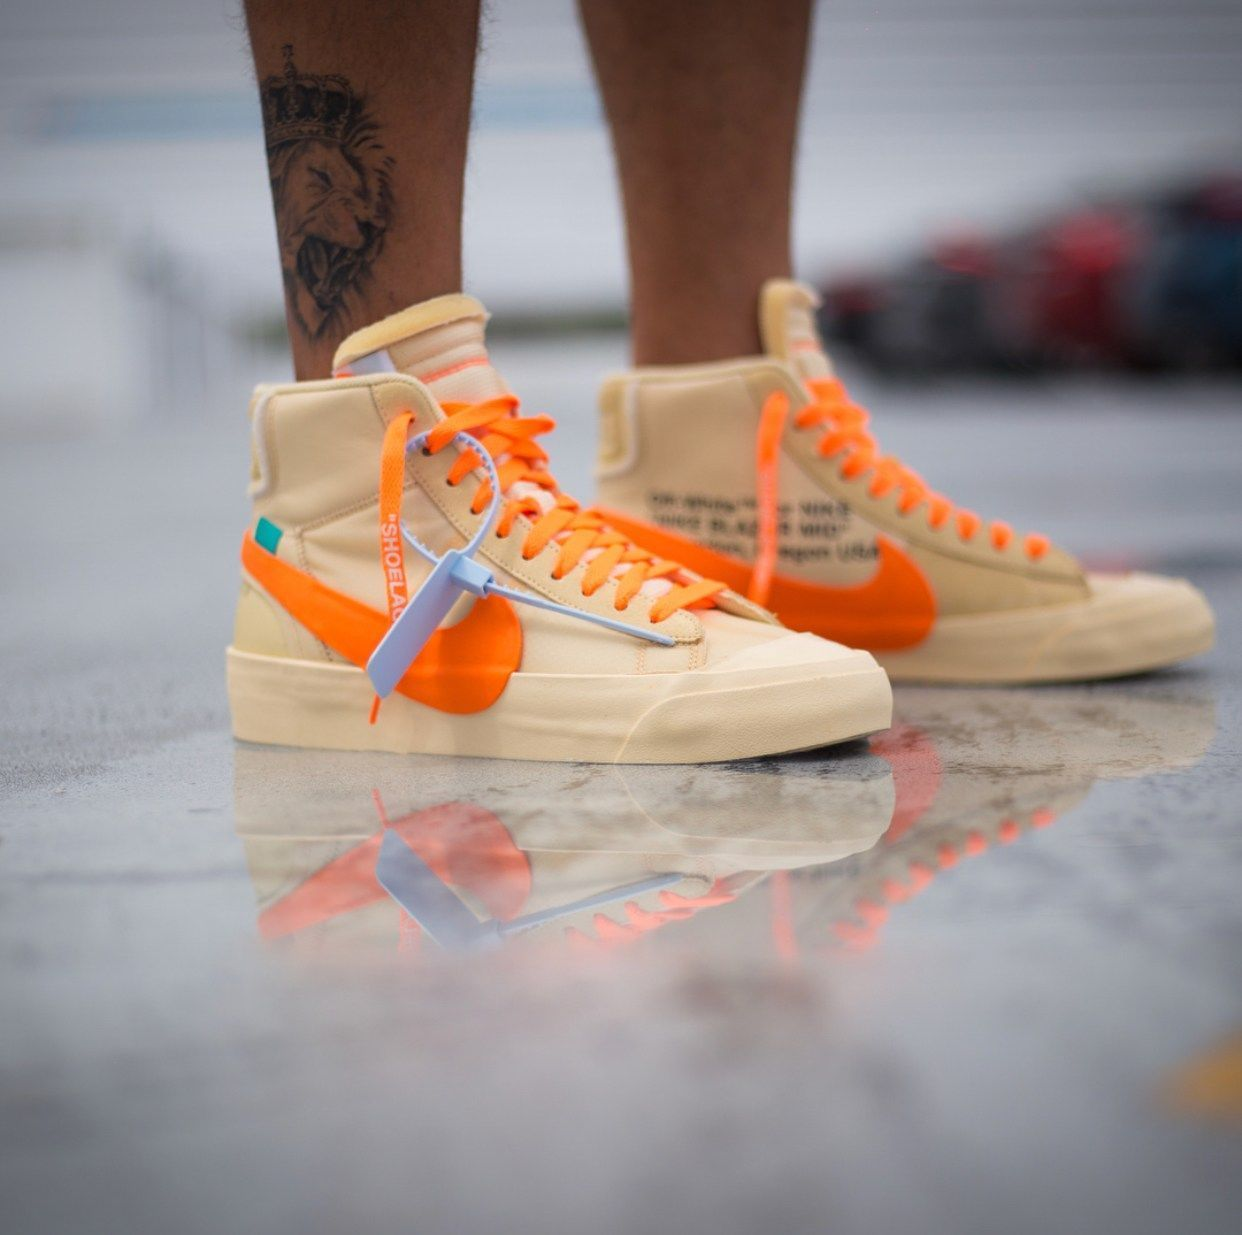 cable Pilar Arriba  Off-White Nike Blazer All Hallows Eve on feet look #Sneakers | Off white  shoes, White nikes, Off white blazer